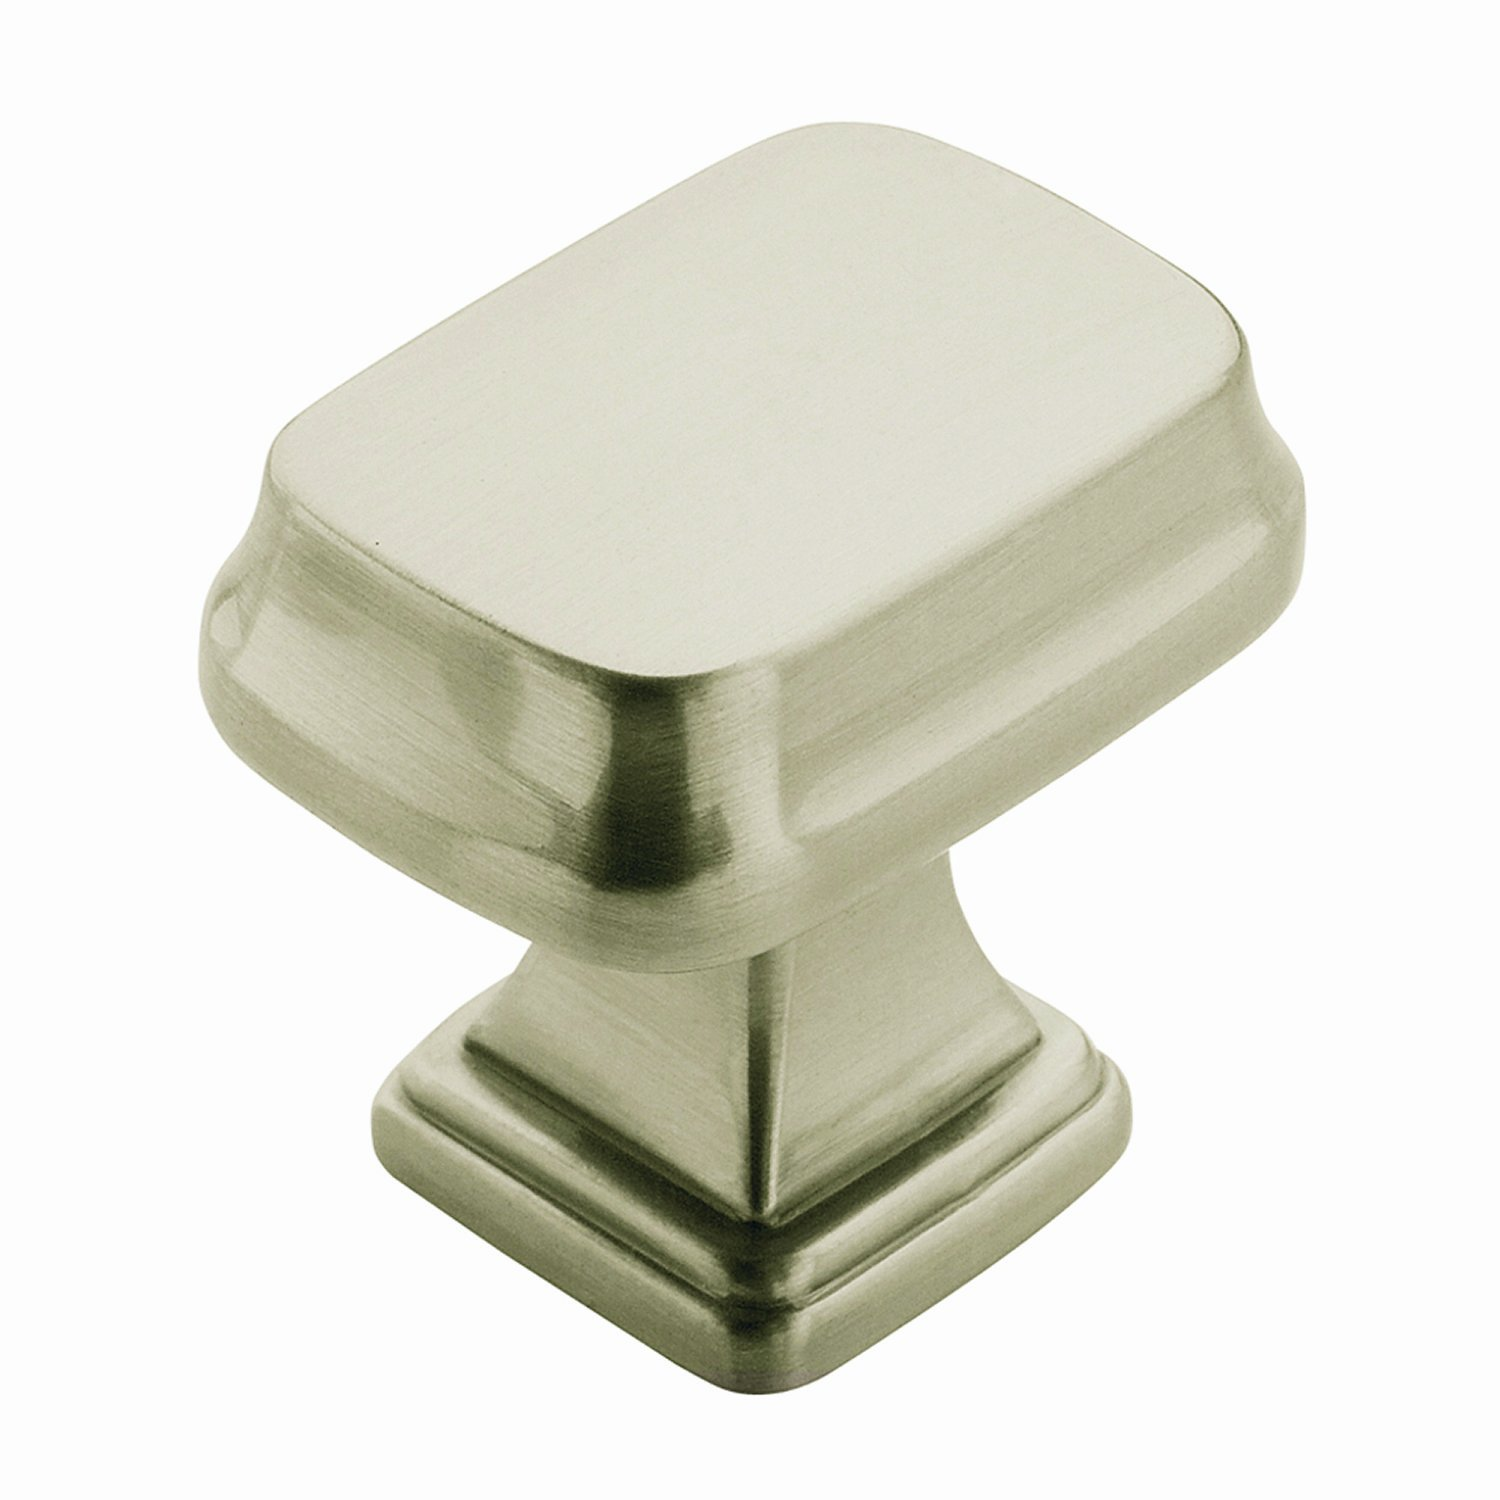 Amerock BP55340G10 Revitalize Rectangular Knob, Satin Nickel, 1 1/4 Inch    Cabinet And Furniture Knobs   Amazon.com